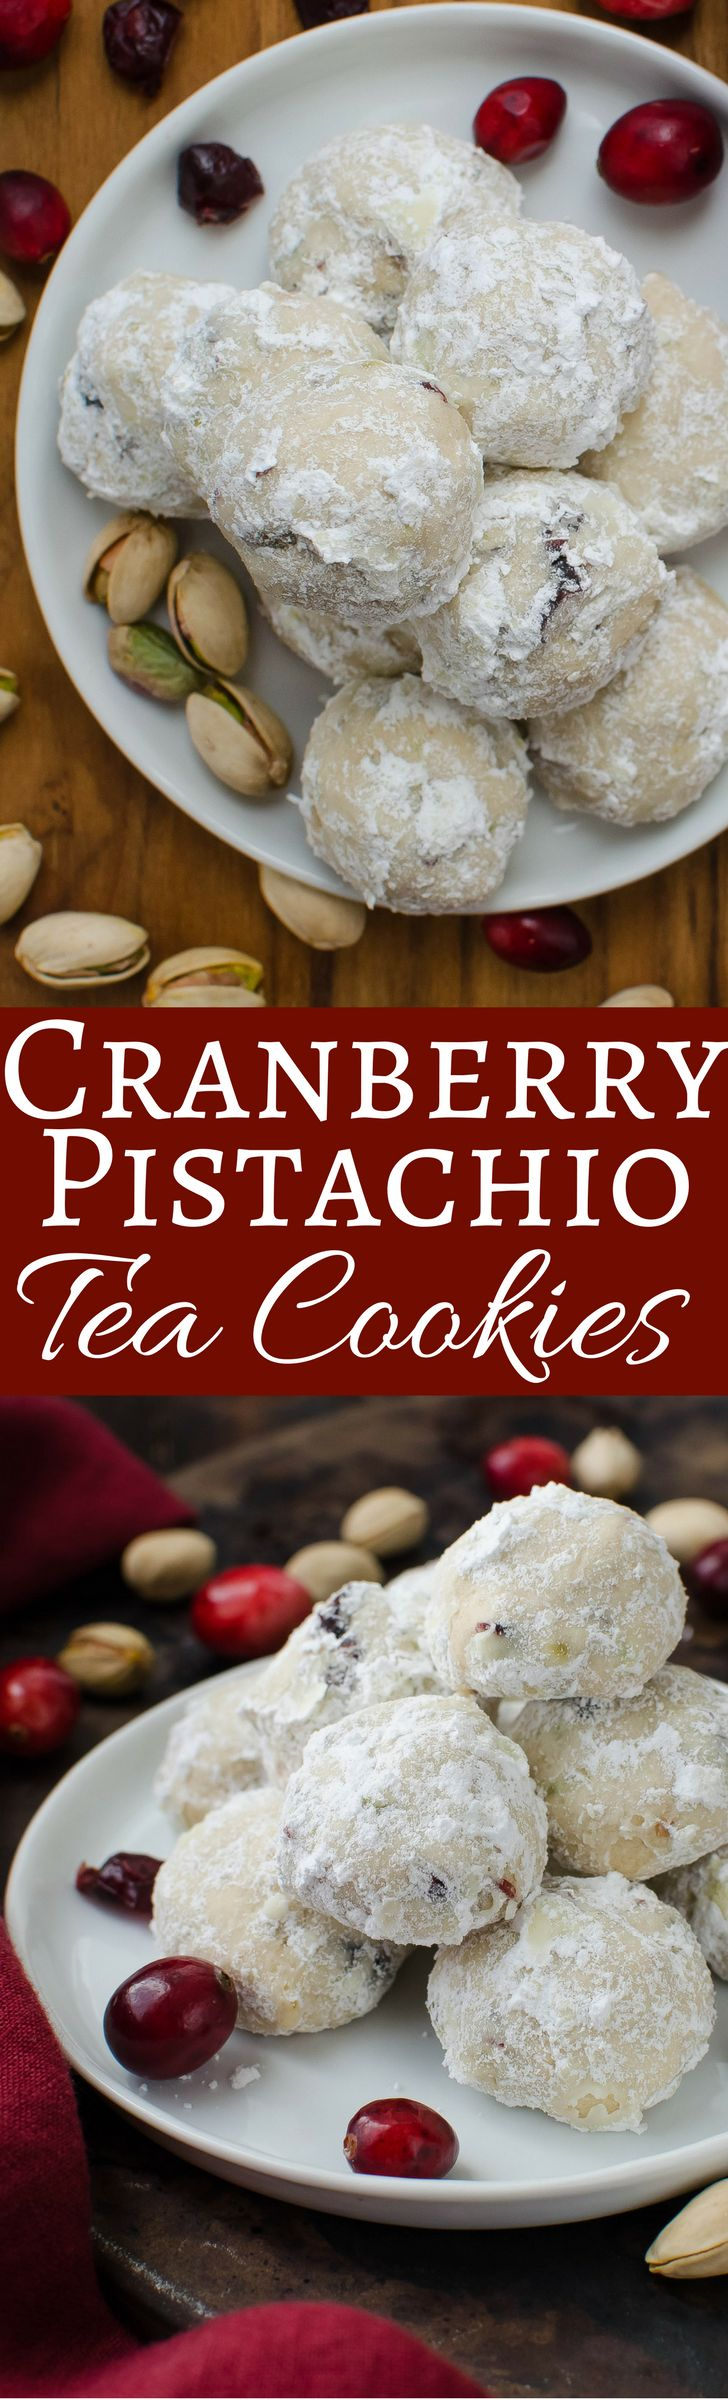 cranberry pistachio tea cookies                                                                                                                                                                                 More